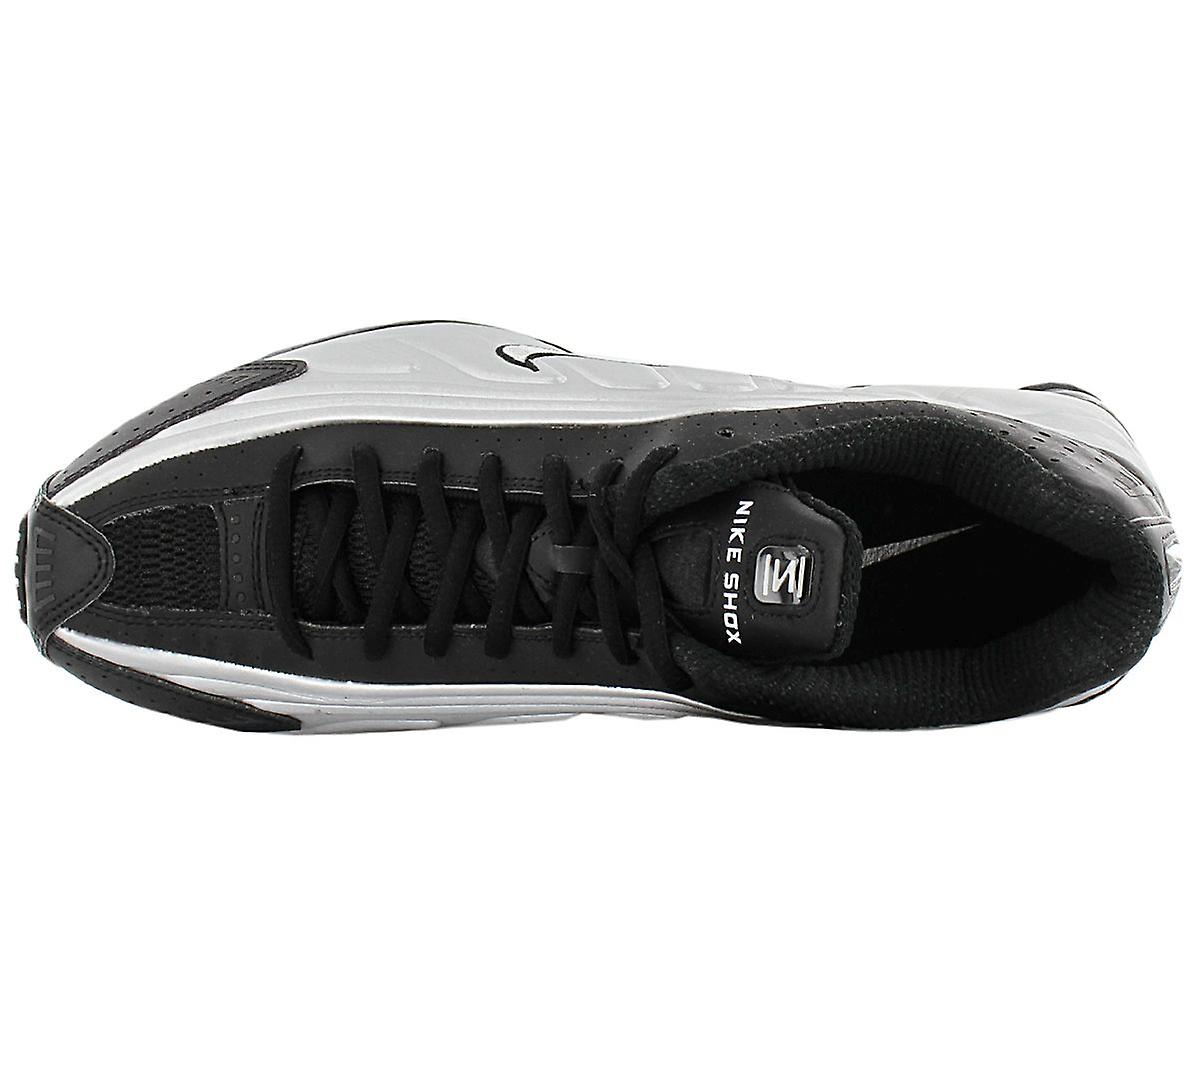 Nike Shox R4 - Chaussures Hommes Black Silver 104265-045 Sneakers Chaussures de sport